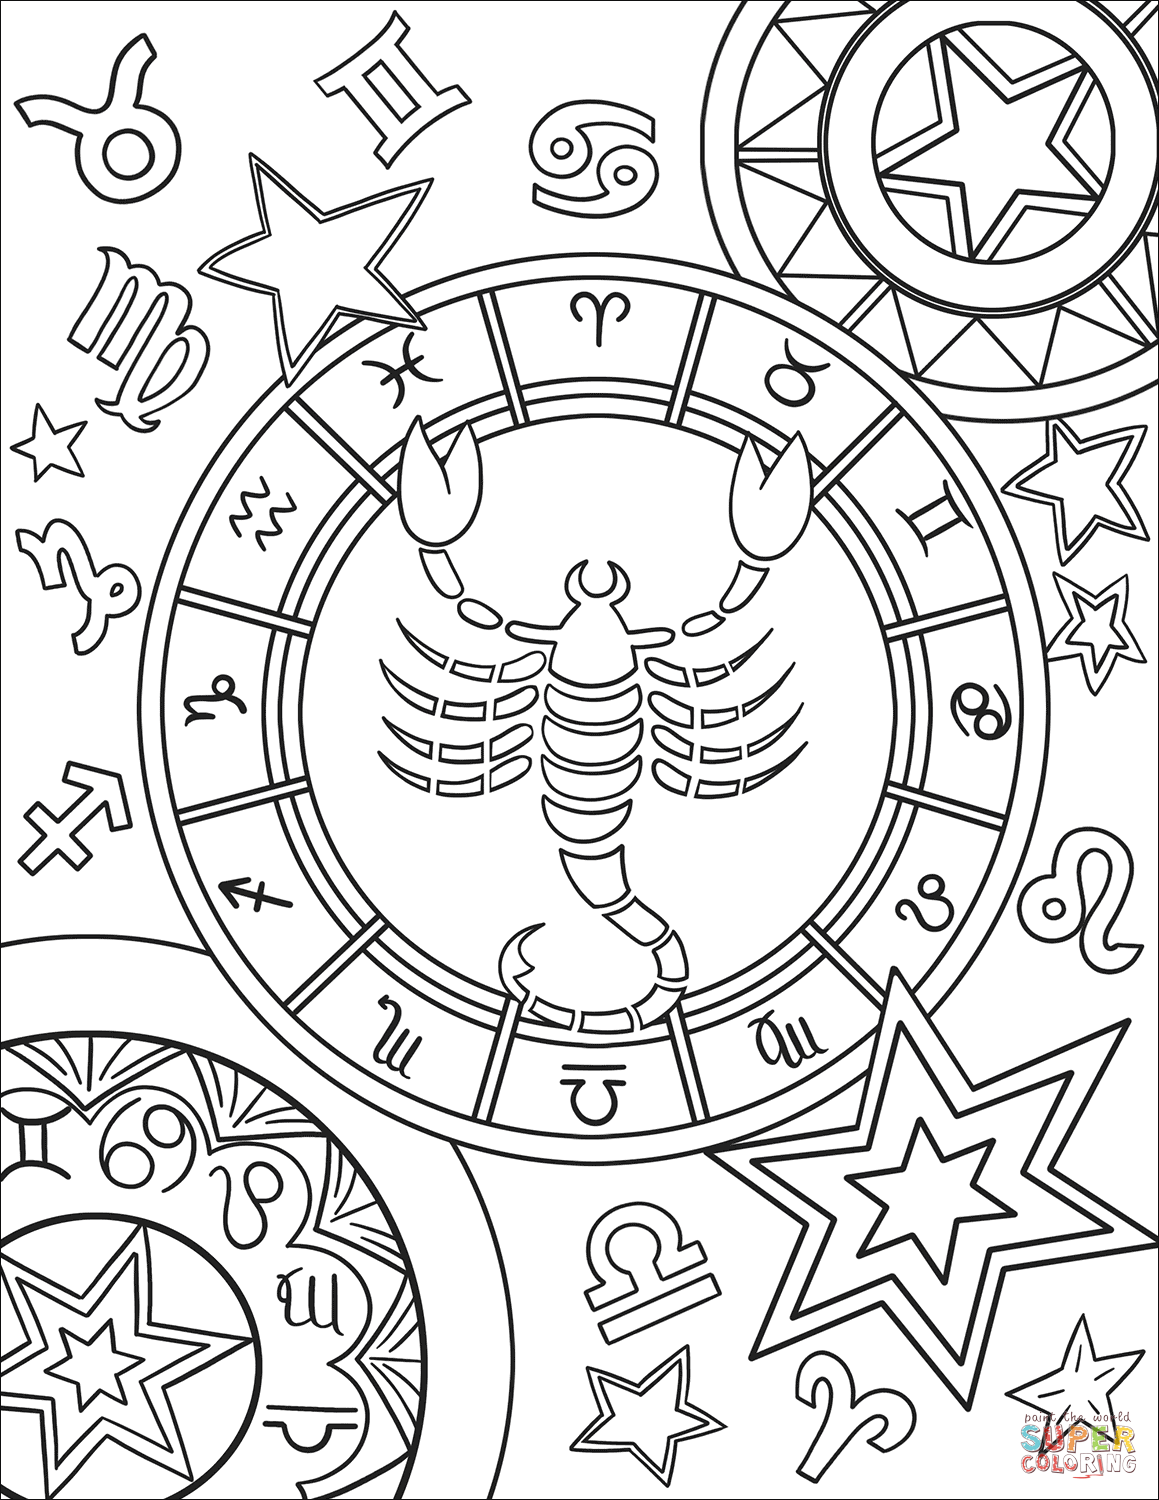 zodiac coloring pages zodiac signs coloring pages kidsuki zodiac coloring pages